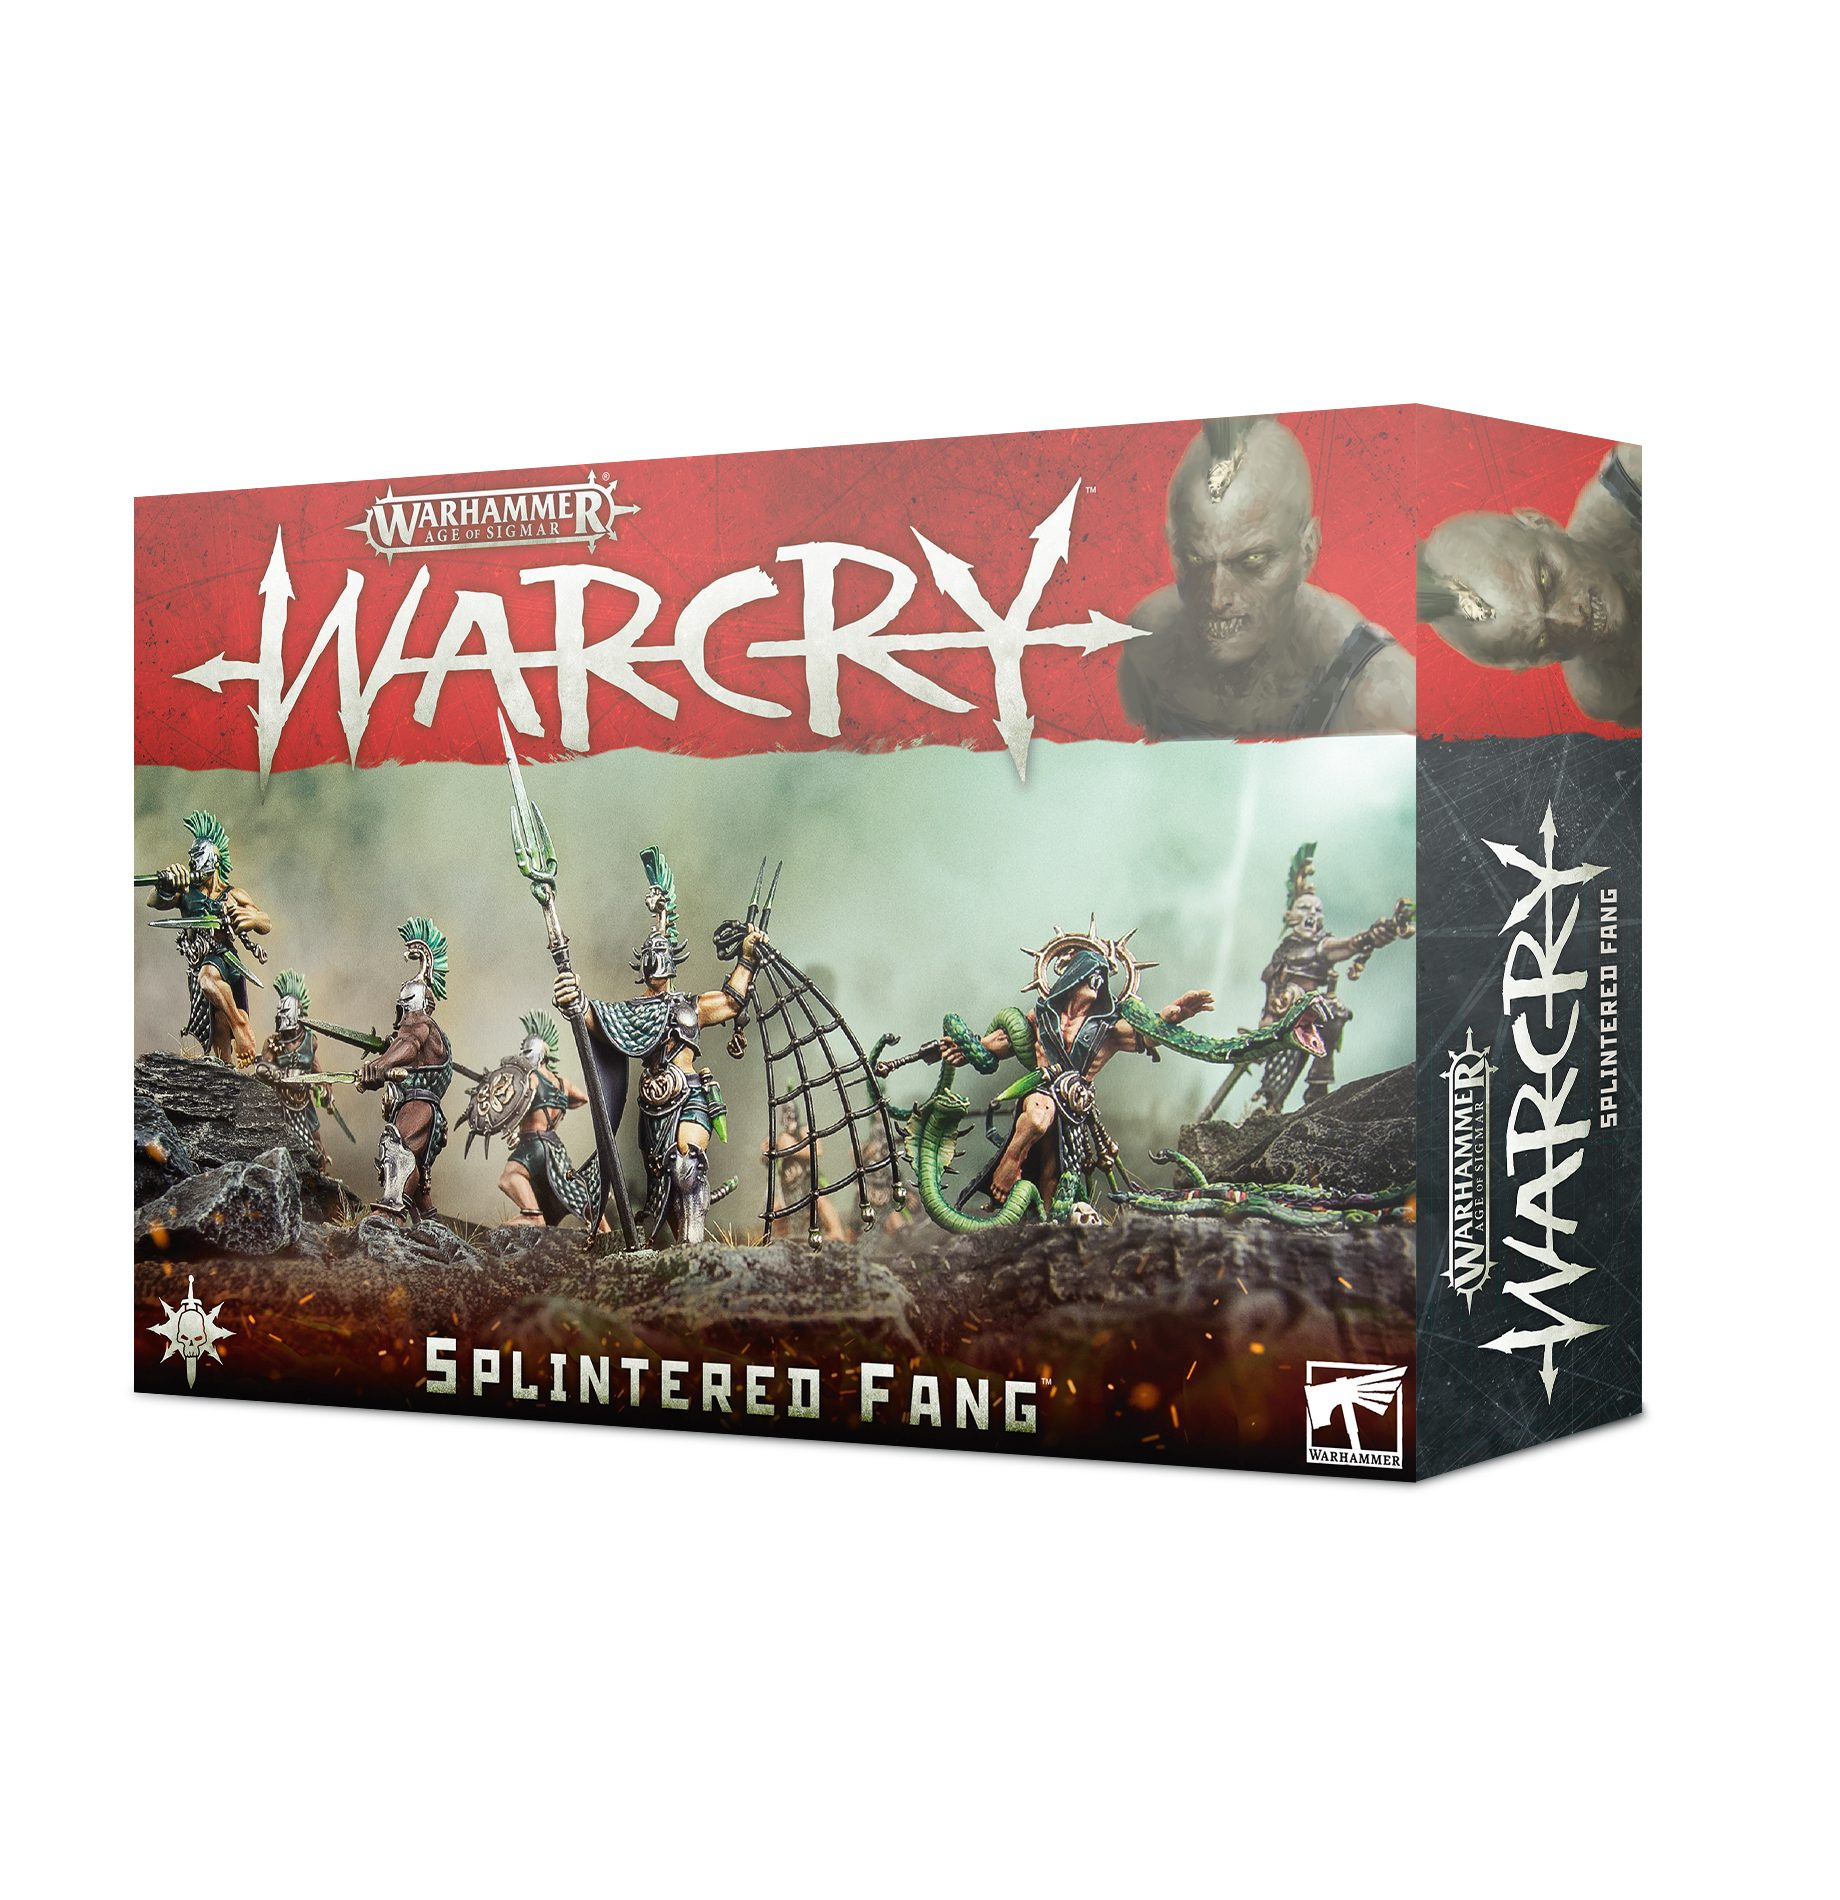 The Splintered Fang, Warcry